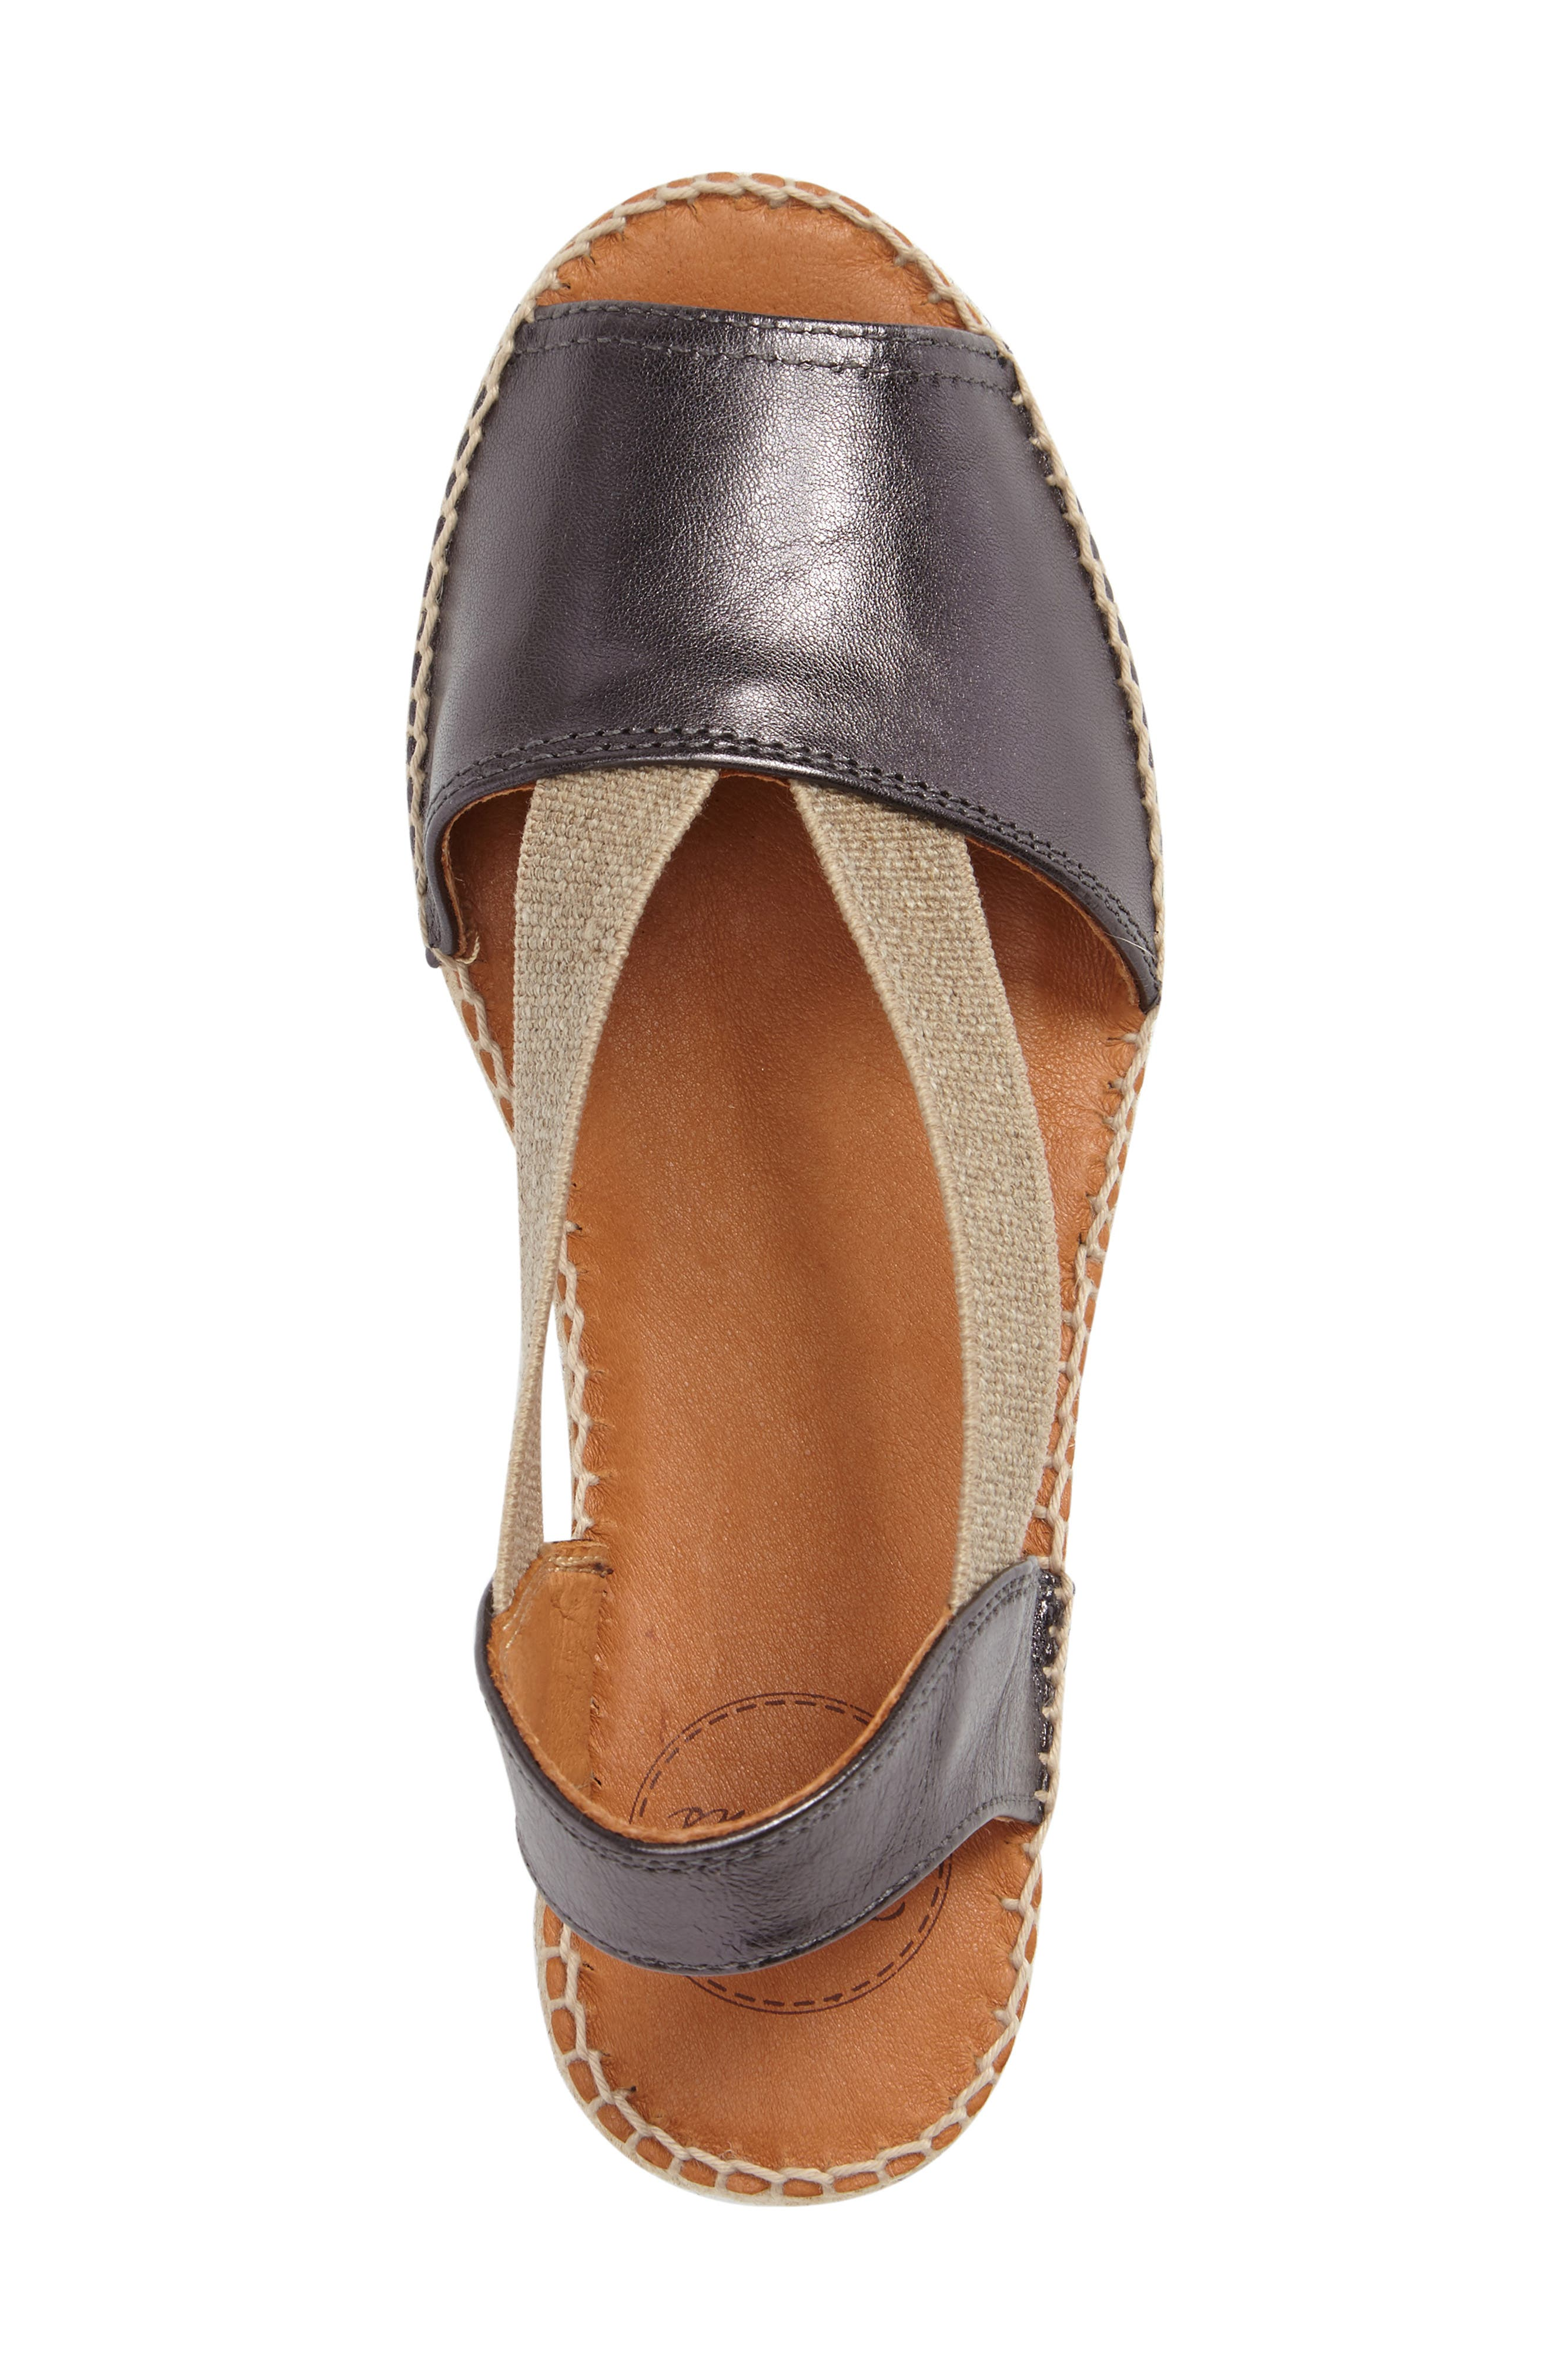 Etna Espadrille Sandal,                             Alternate thumbnail 3, color,                             LEAD LEATHER